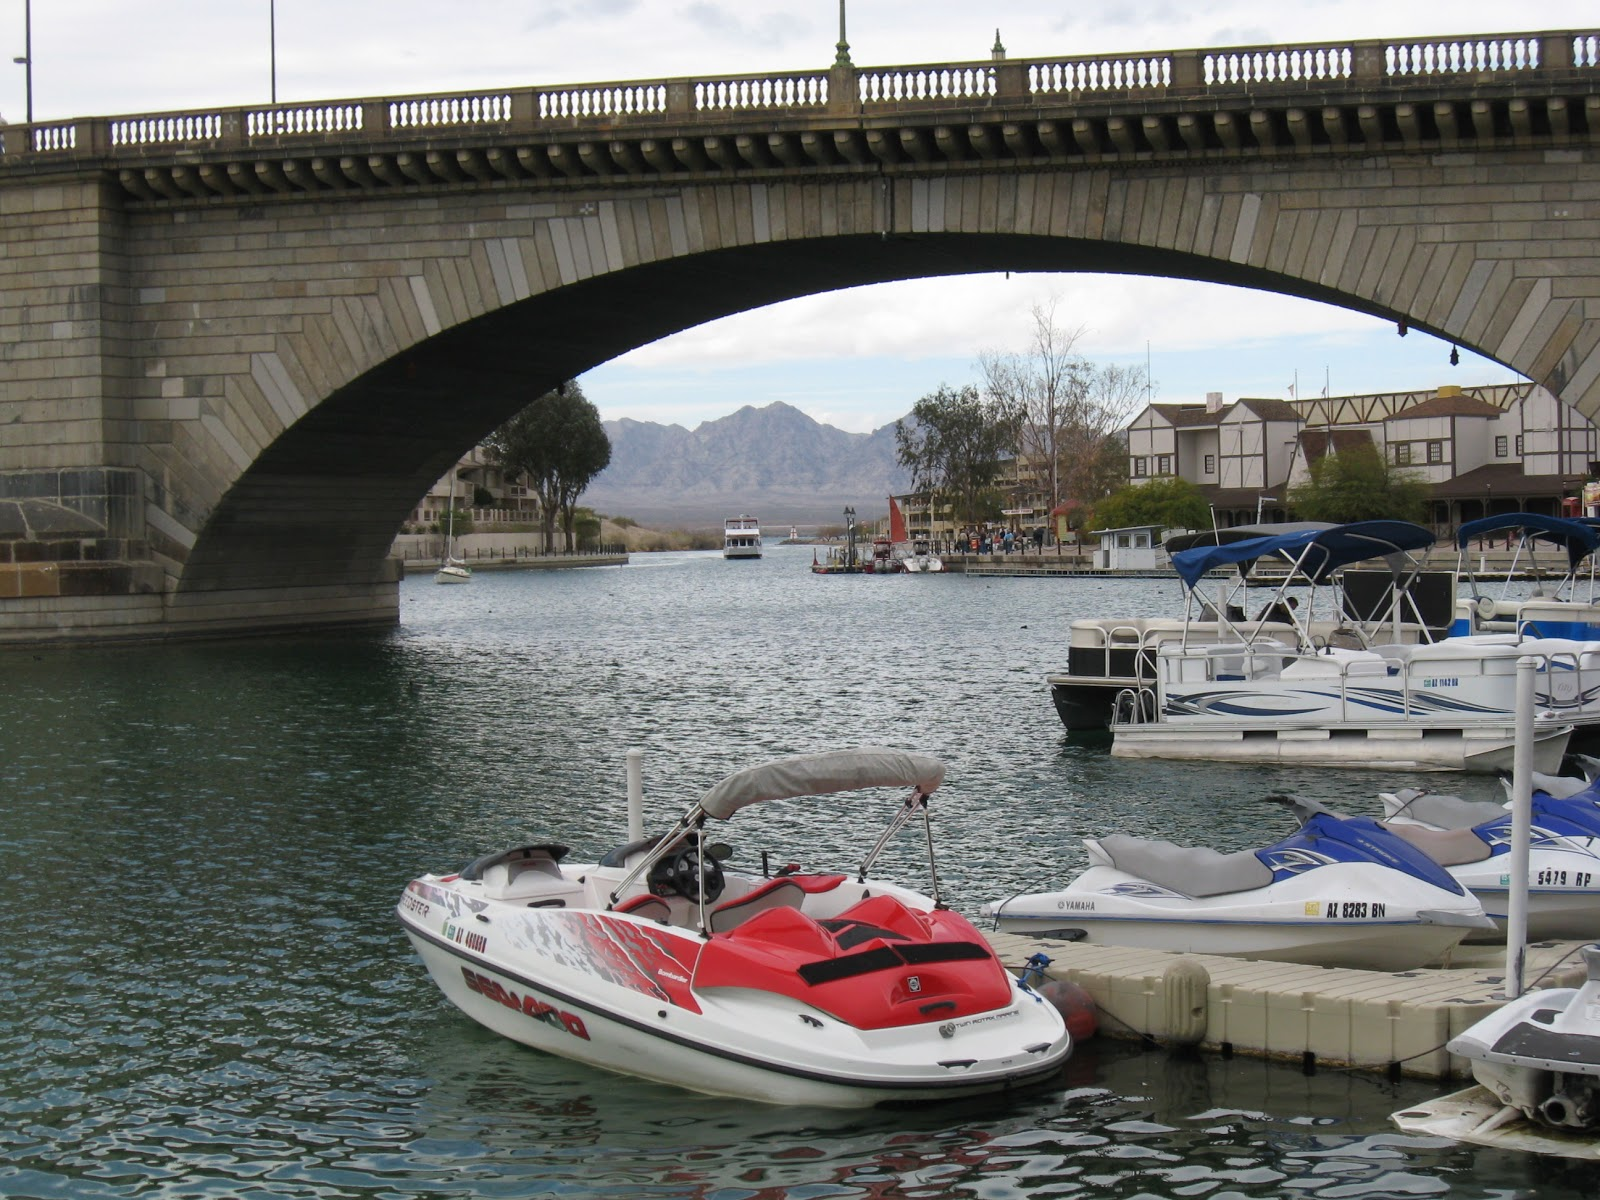 London Bridge Koa Lake Havasu City Az